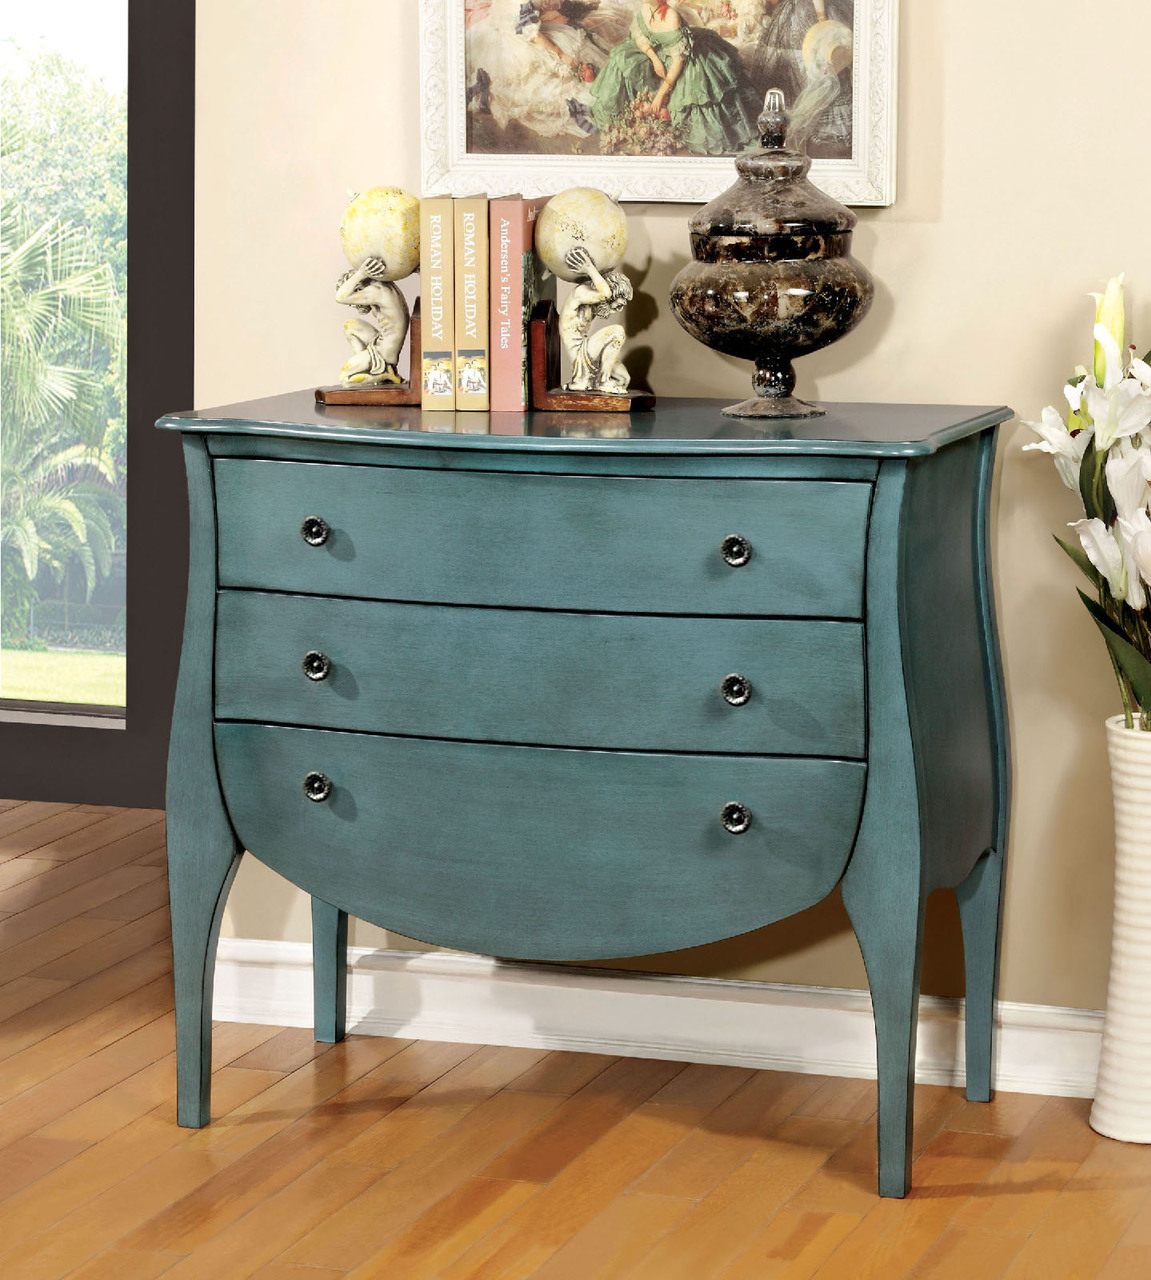 furniture america havre collection antique teal accent table end diy pet whalen mfg inc small white side for nursery outdoor patio seating winchester garden couch tables sauder